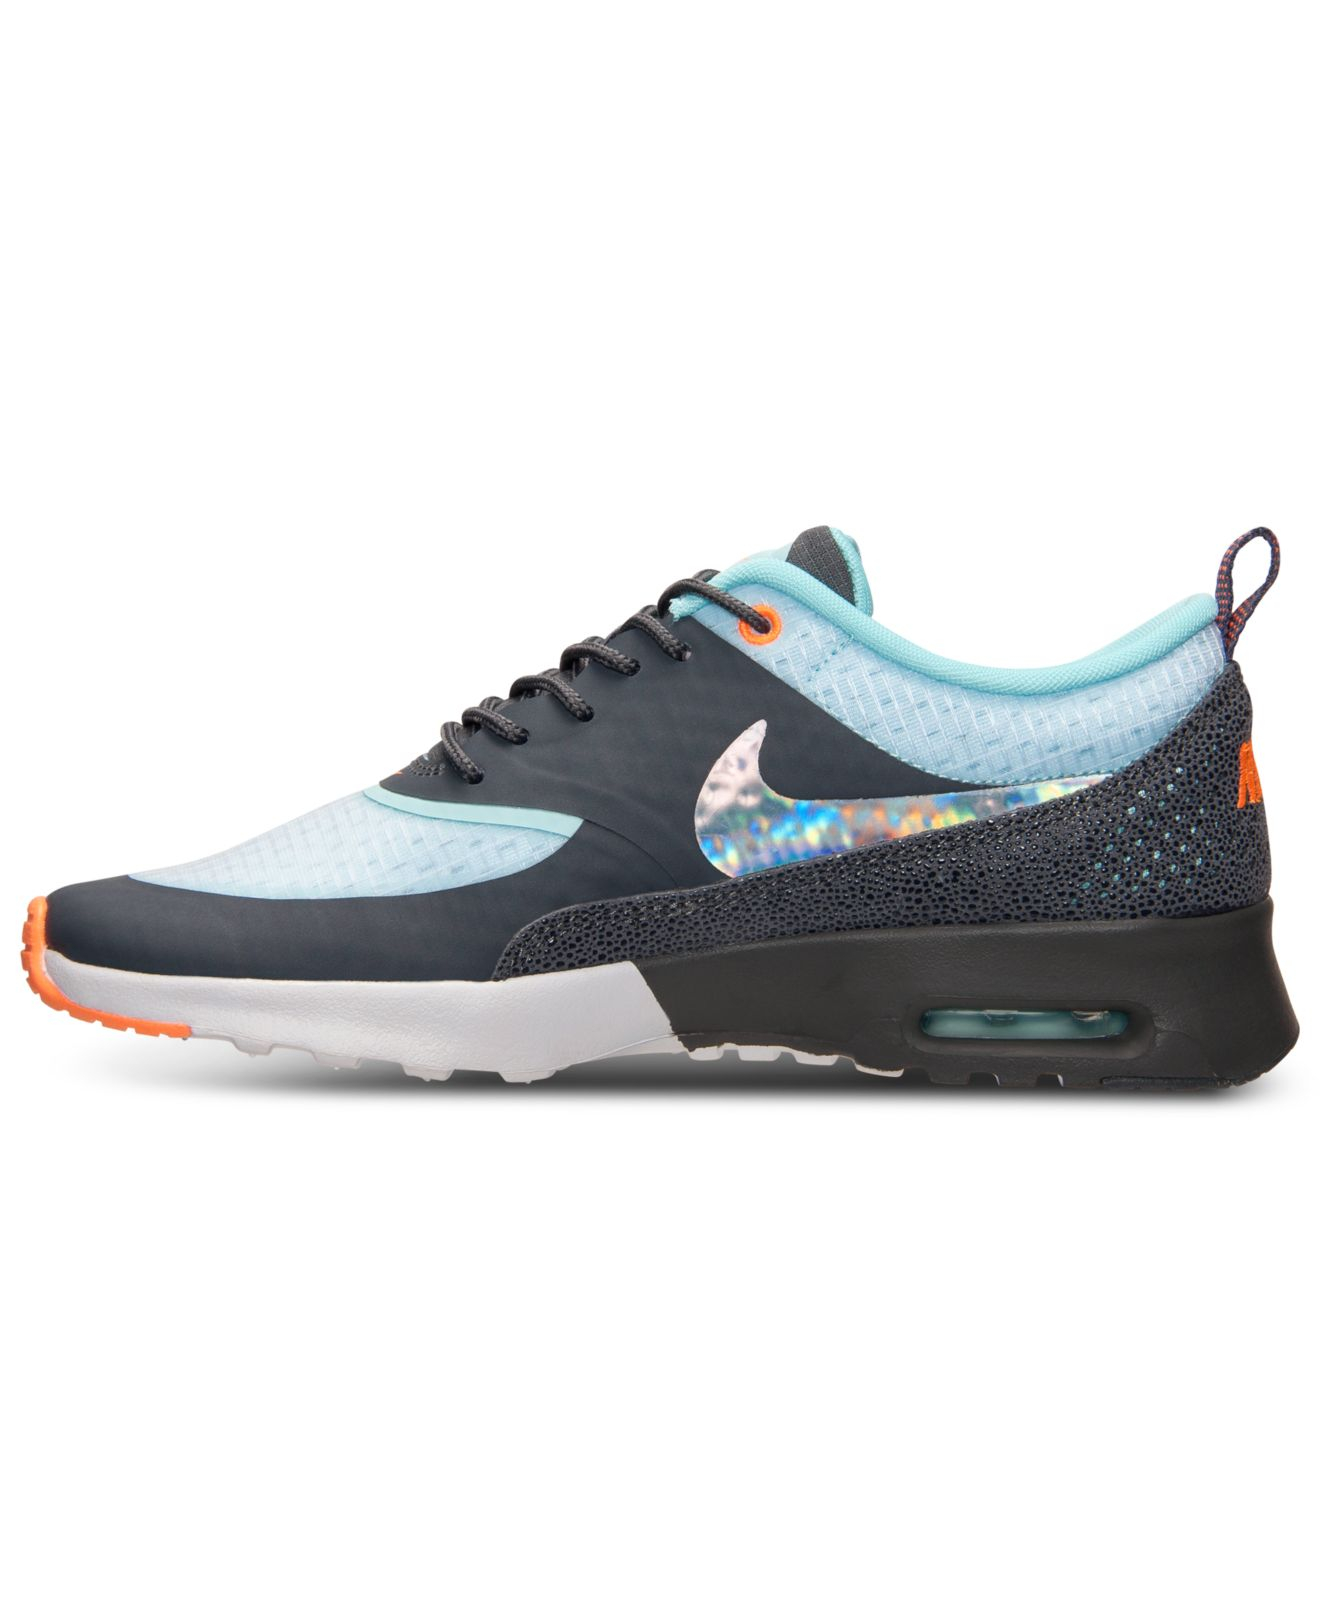 3a9e3f357cf6 ... black white metallic silver d738b 2552b  switzerland lyst nike womens air  max thea print running sneakers from finish line in blue 18091